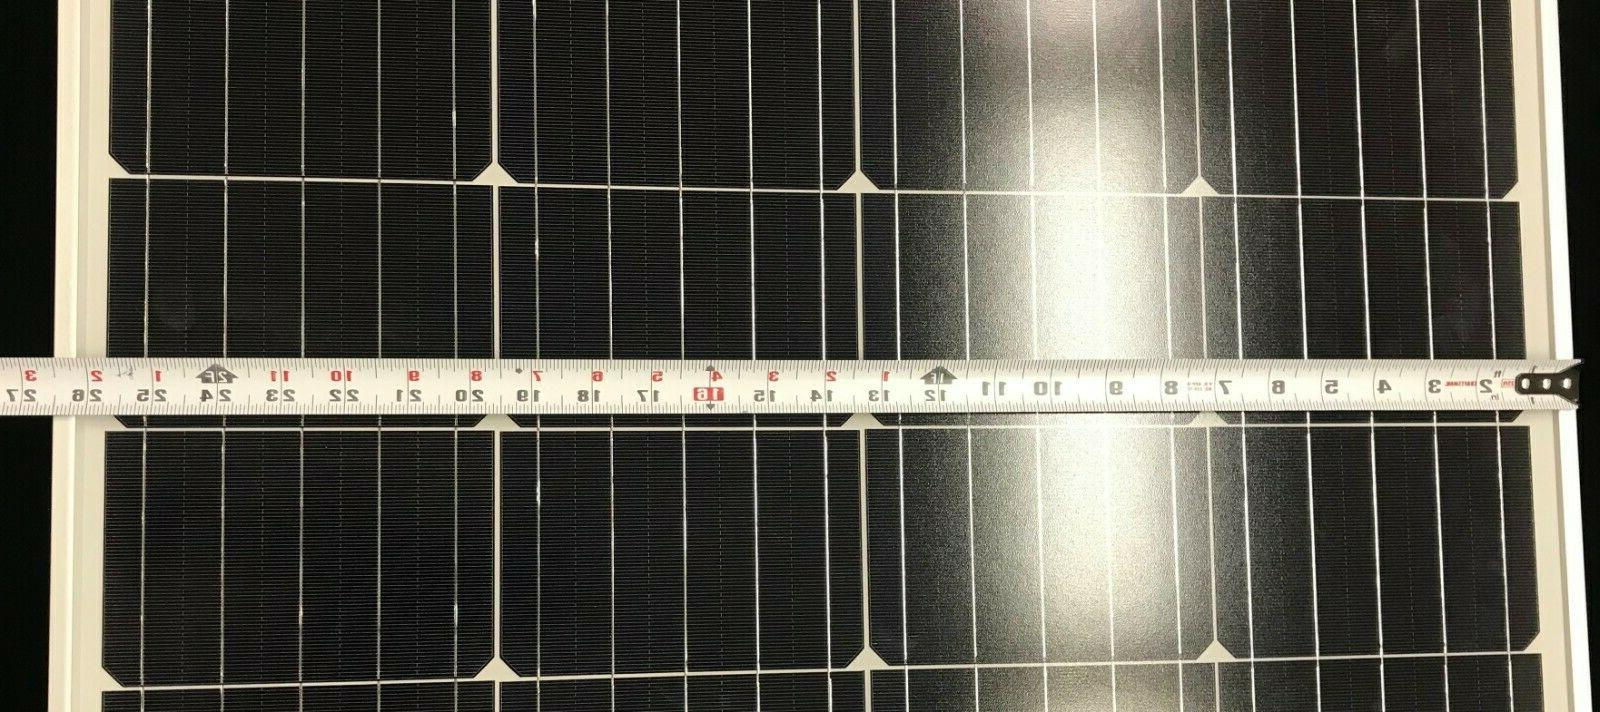 400 Watt Panels, 4# RV, 12 volt, lot,